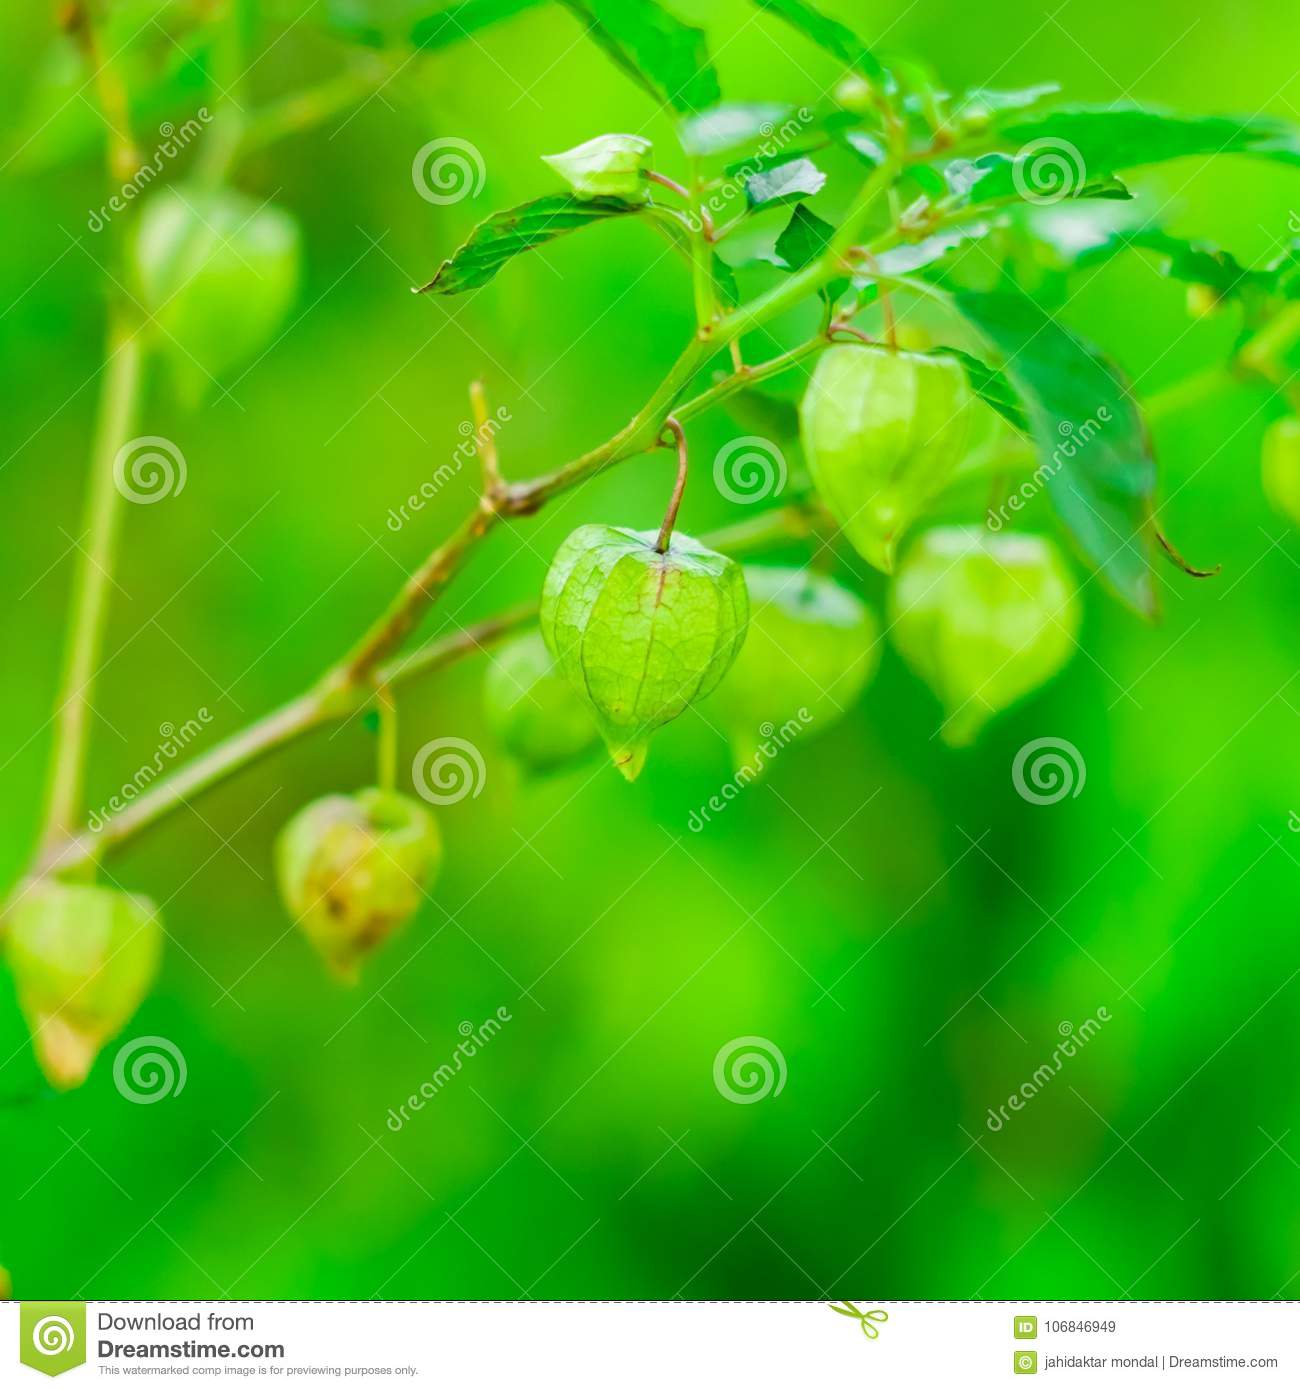 Very Nice Wallpaper Color Background Stock Image Image Of